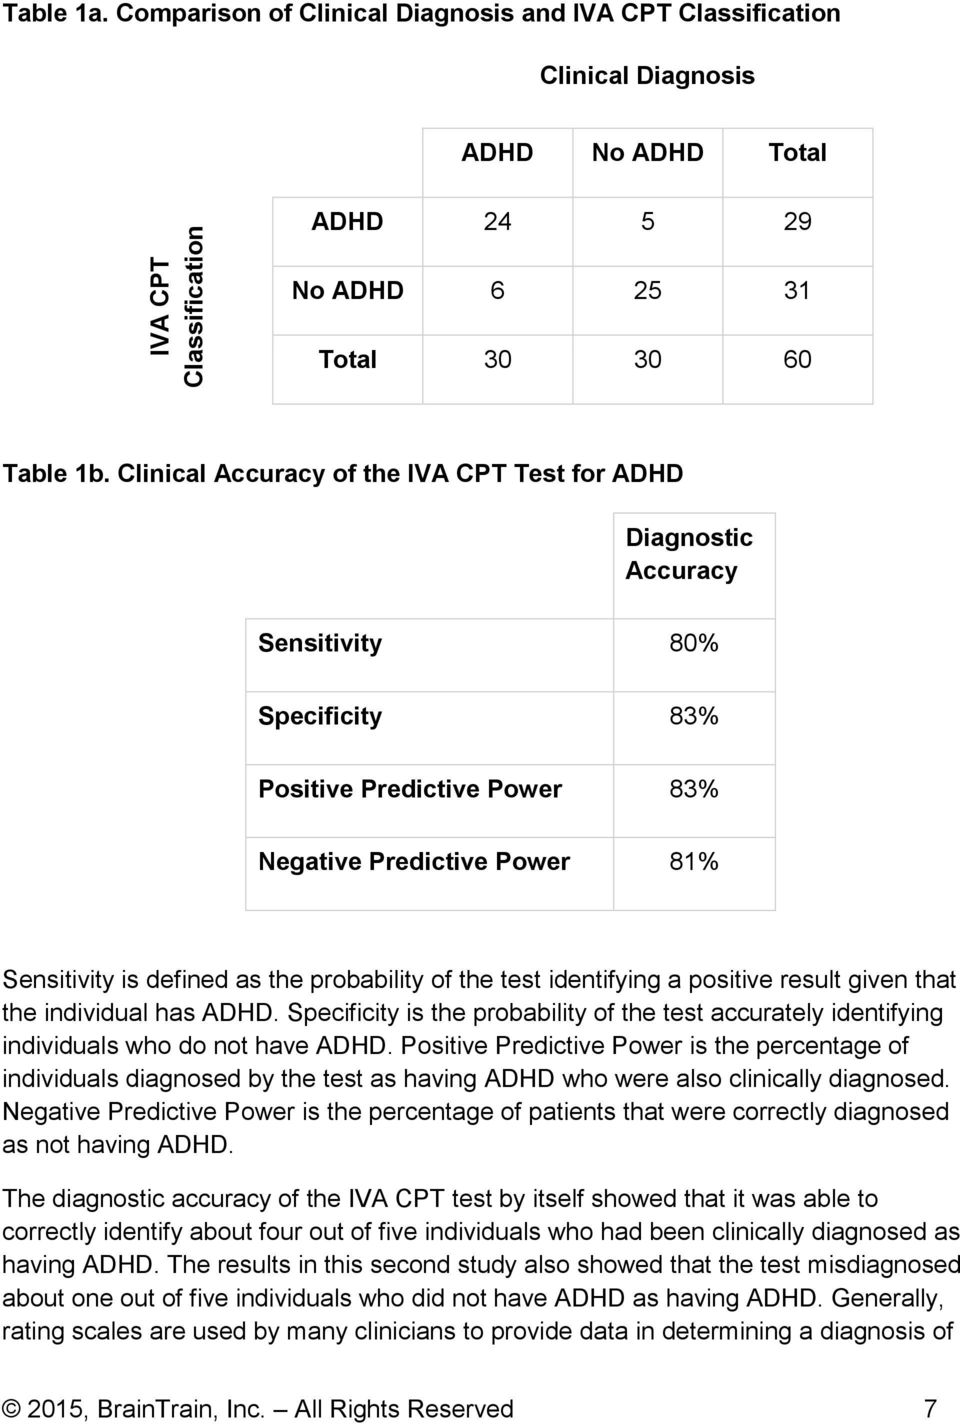 probability of the test identifying a positive result given that the individual has ADHD. Specificity is the probability of the test accurately identifying individuals who do not have ADHD.